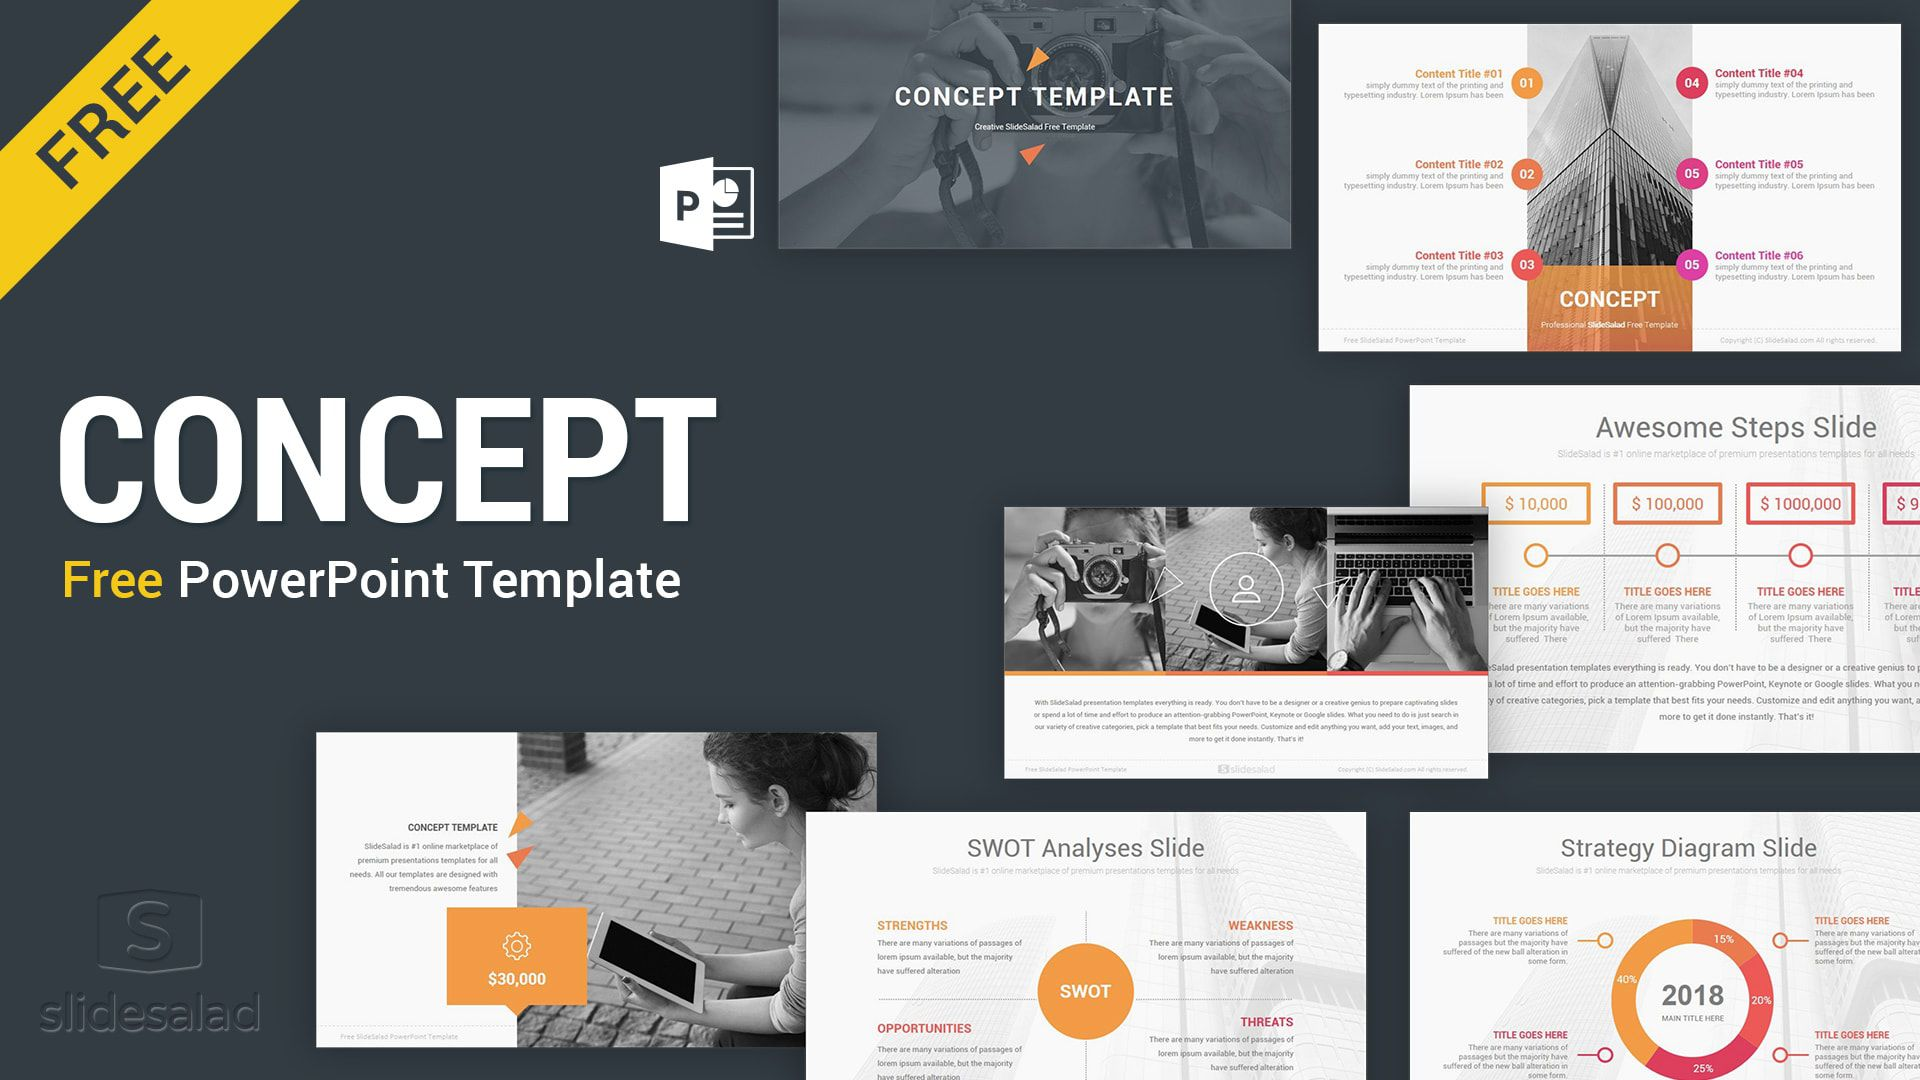 005 Awful Free Powerpoint Presentation Template Image  Templates 22 Slide For The Perfect Busines Strategy Download EngineeringFull